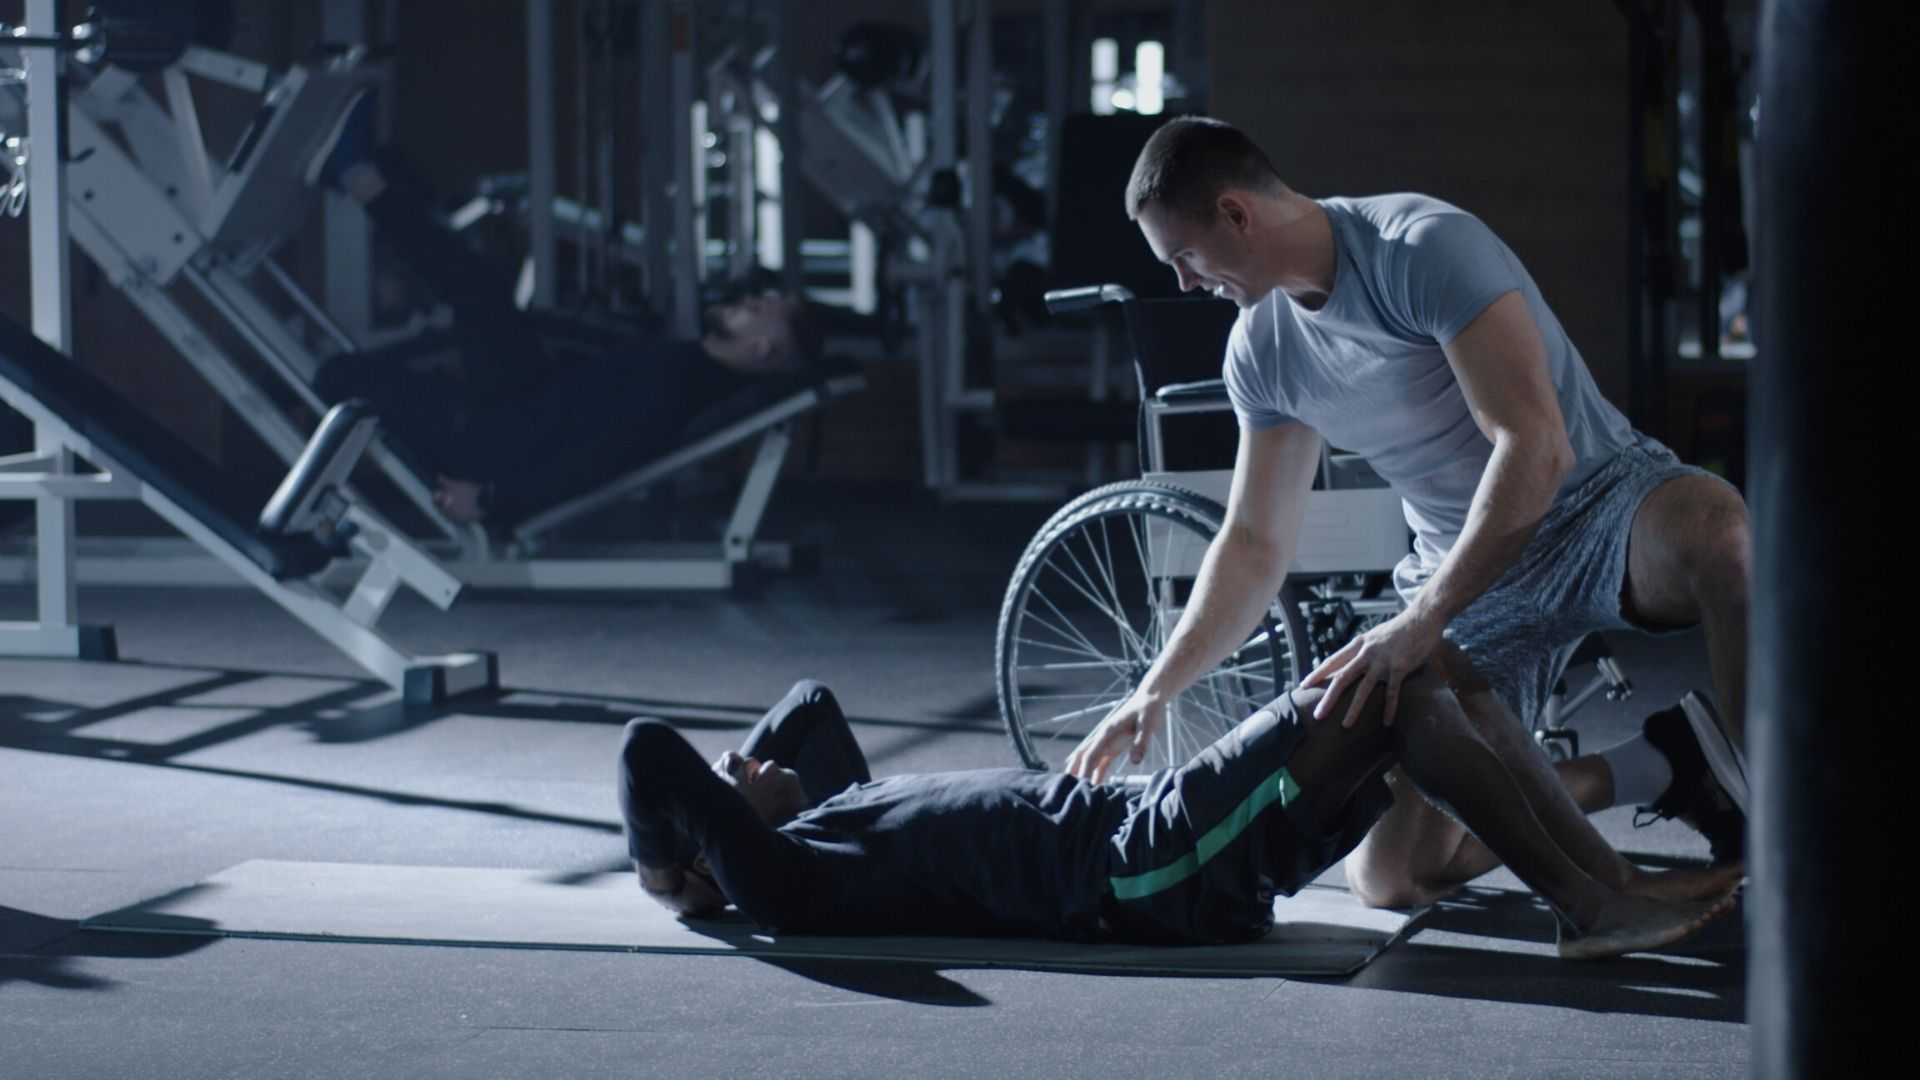 physiotherapists guide to promoting physical activity to clients with spinal cord injury